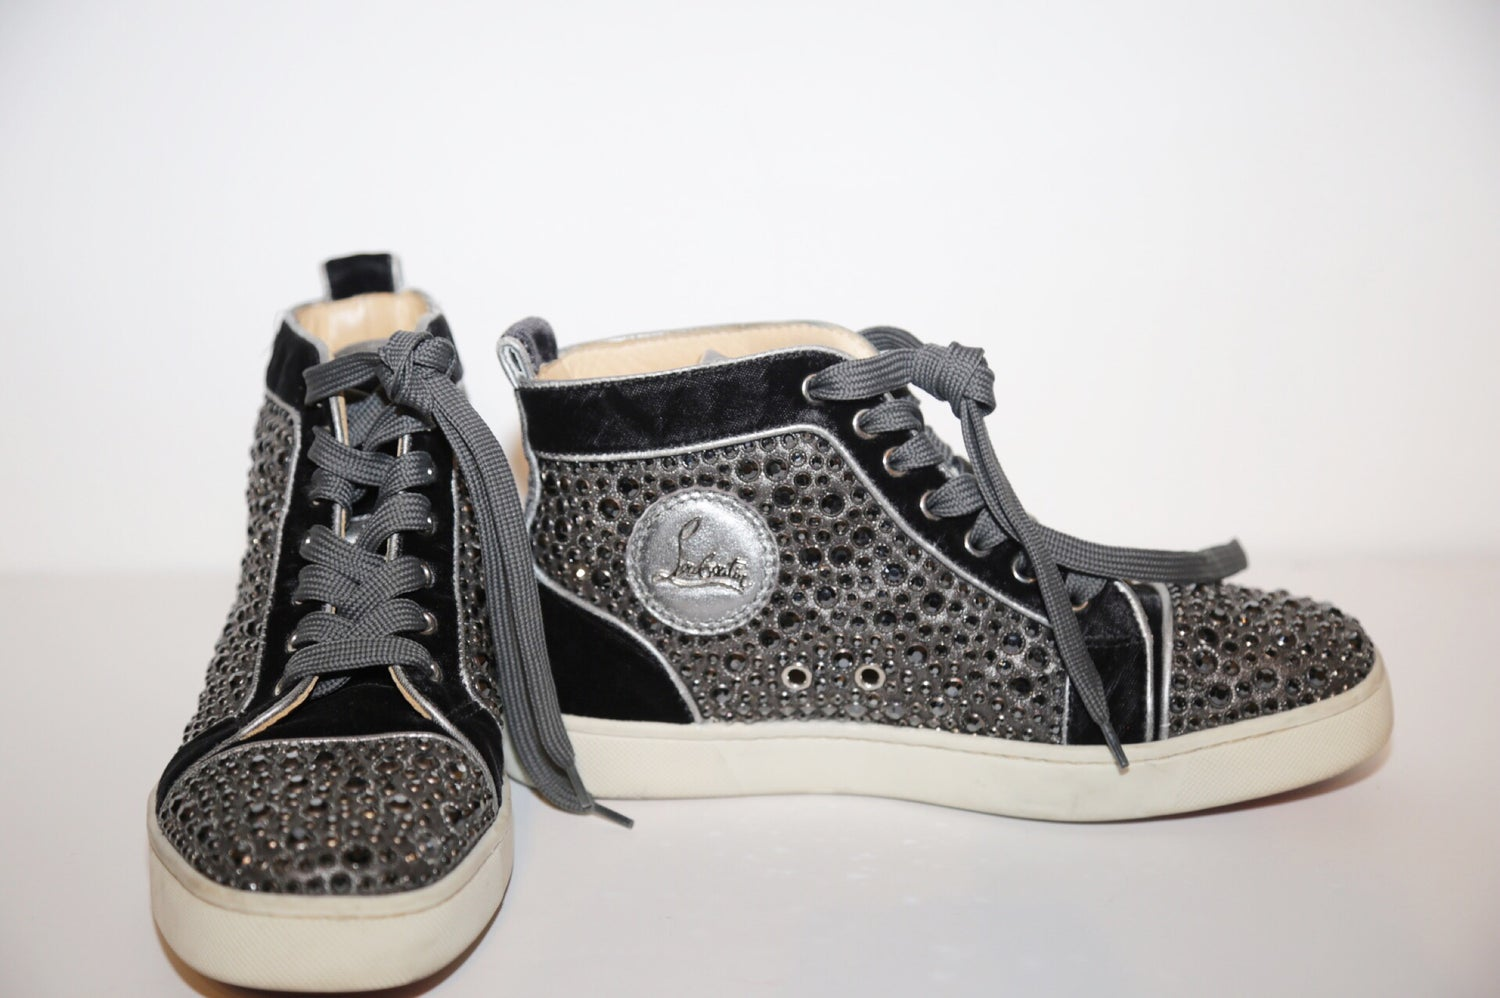 newest 3dba5 cc298 CHRISTIAN LOUBOUTIN SNEAKERS